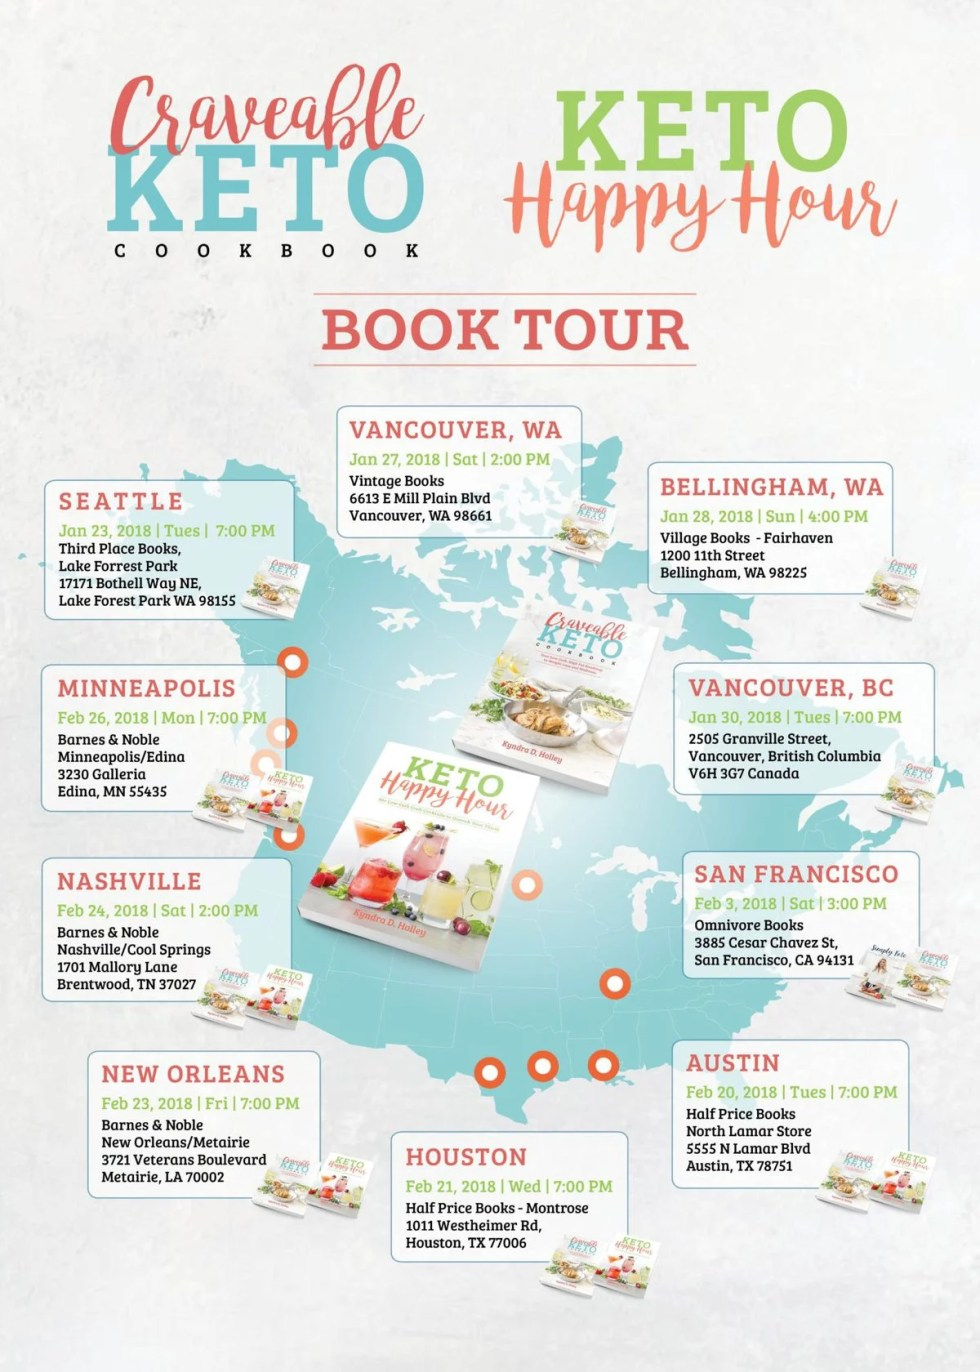 Craveable Keto Book Tour By Kyndra Holley of Peace, Love and Low Carb